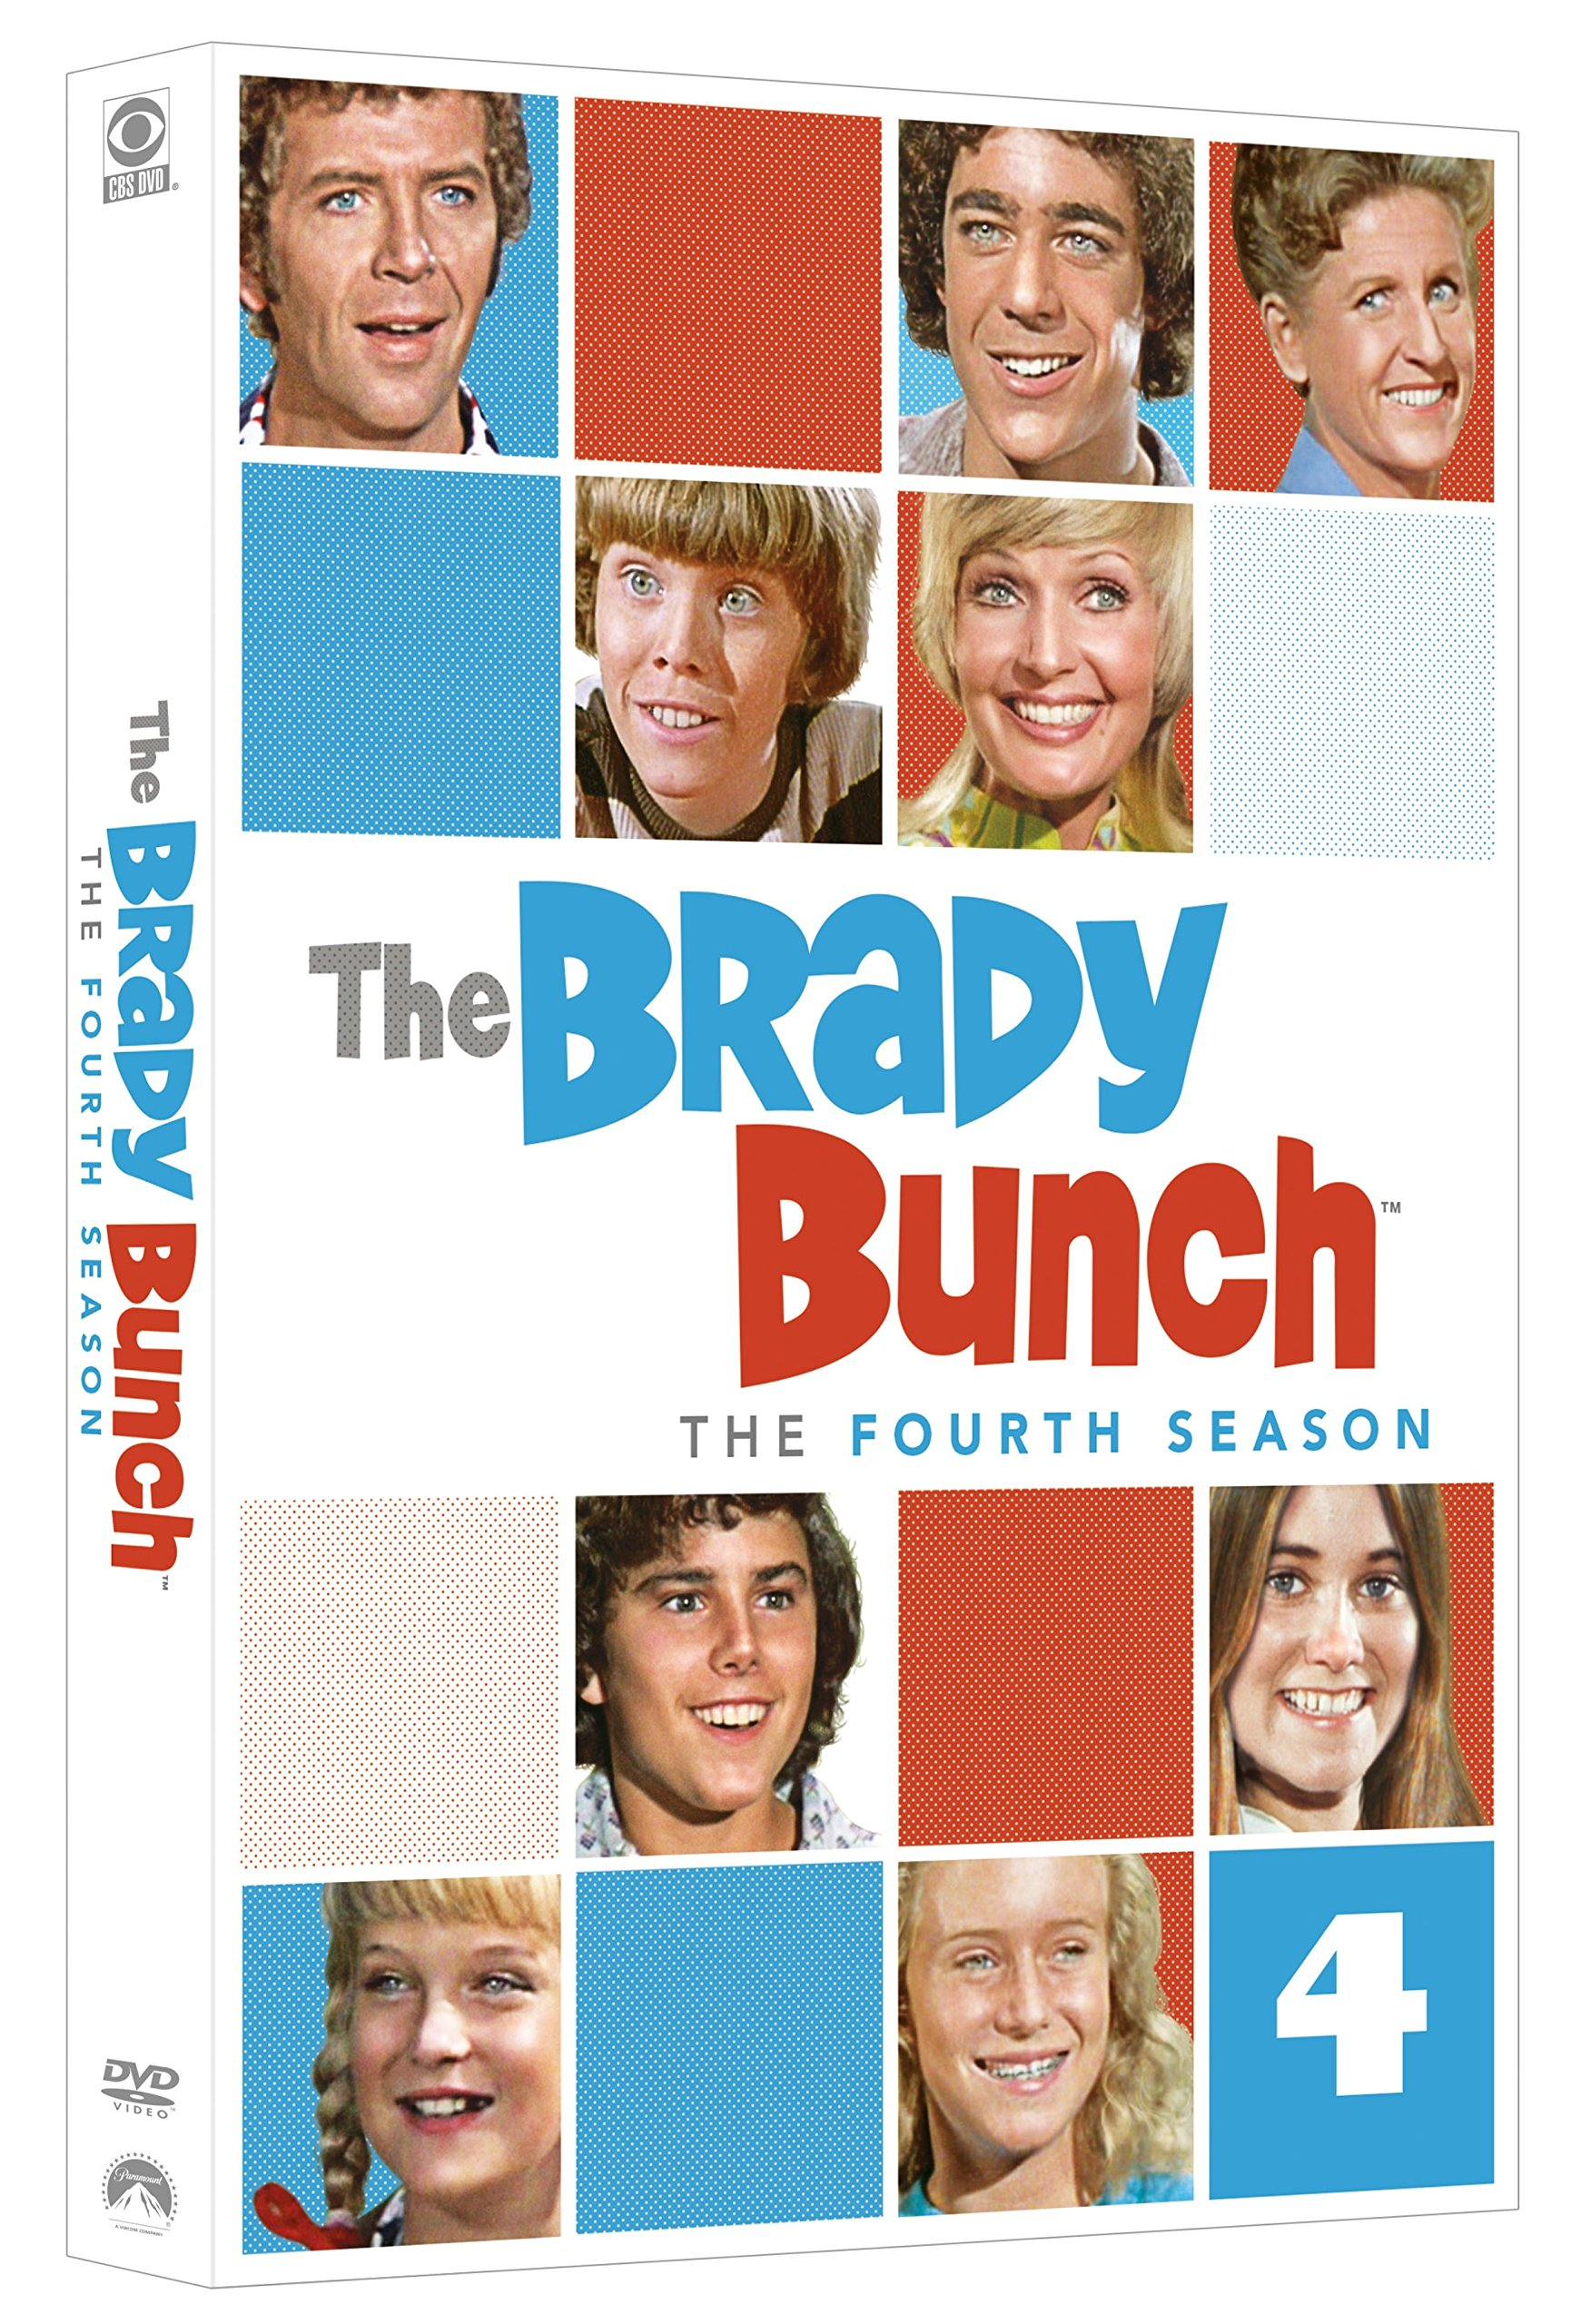 DVD : The Brady Bunch: The Fourth Season (Boxed Set, Full Frame, Repackaged, Mono Sound, 4PC)